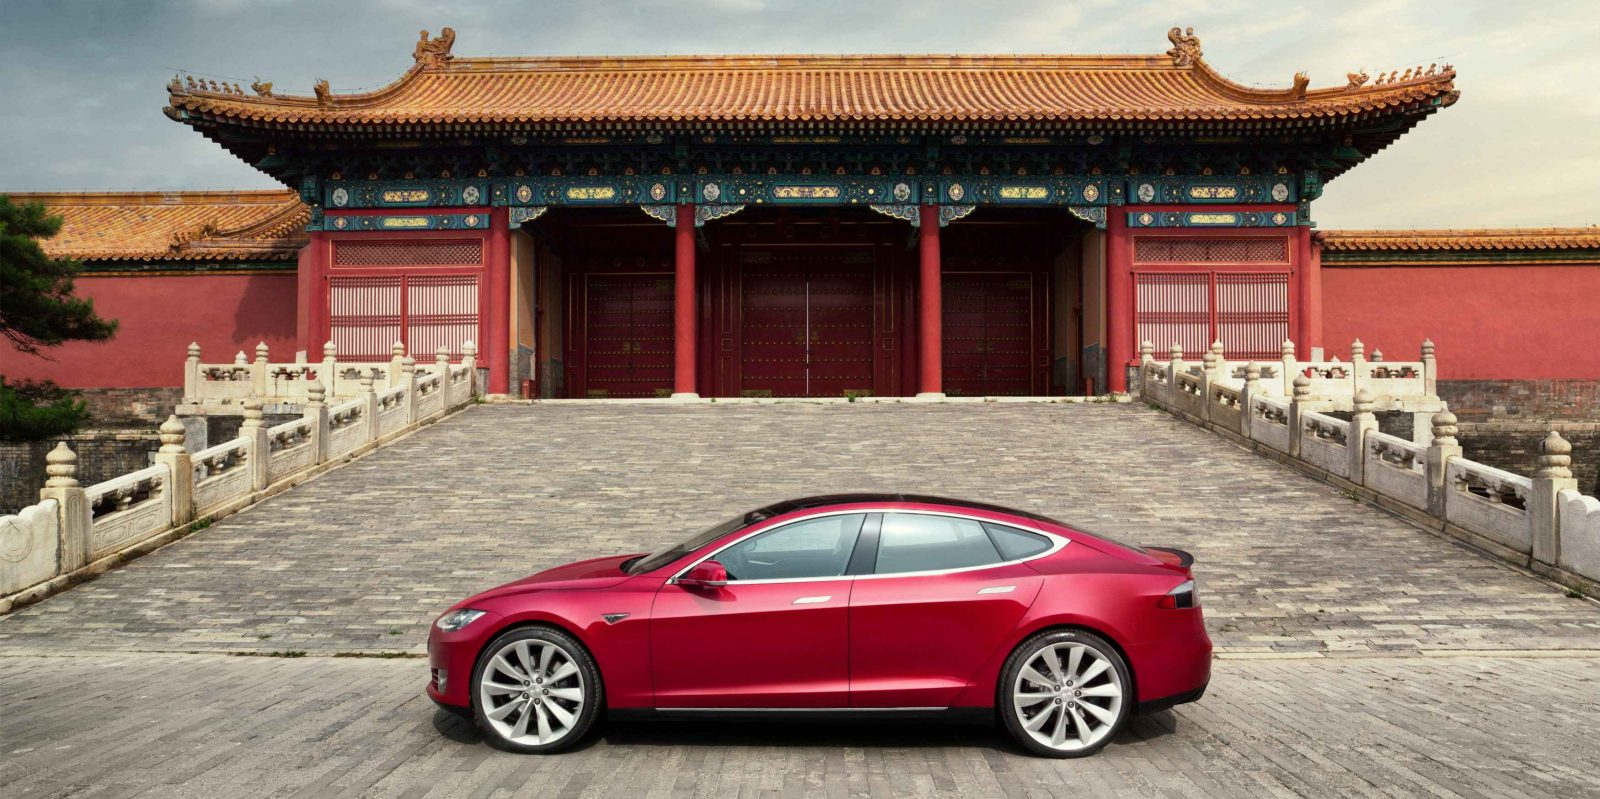 Tesla Giga Shanghai's Model 3 Will Benefit With Gov EV Subsidies Extension Policy